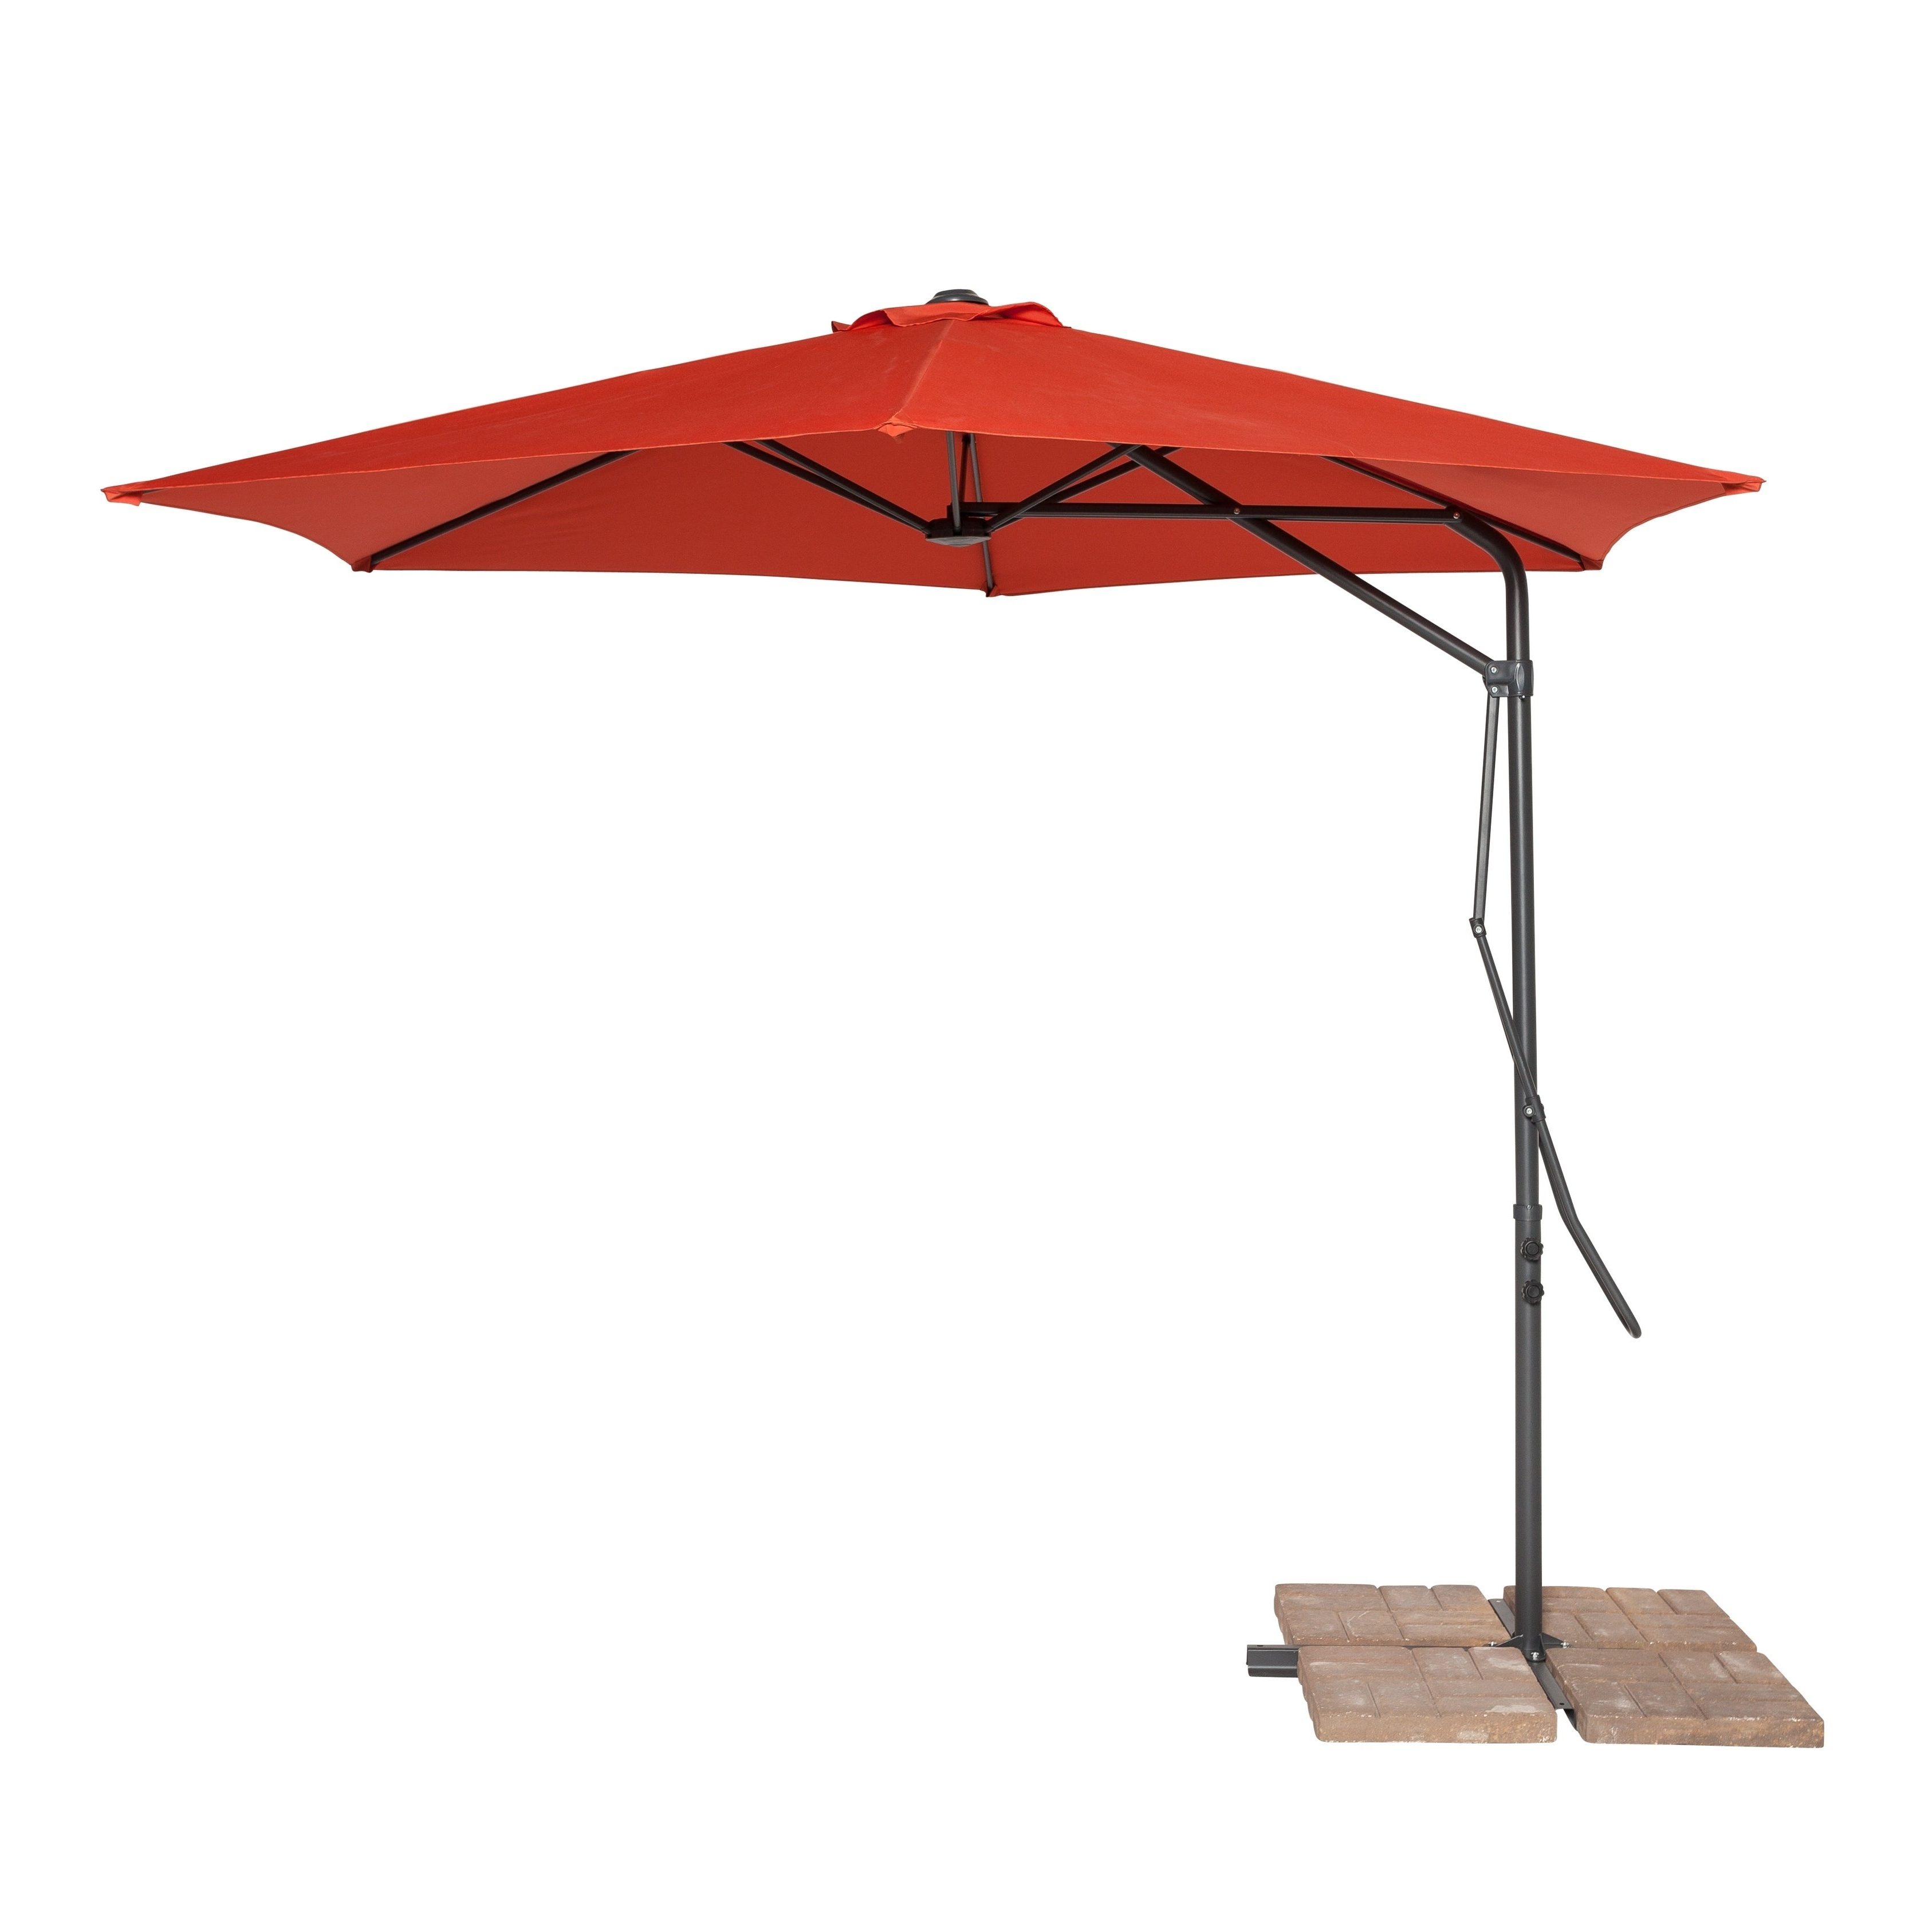 Widely Used Coolaroo Cantilever Umbrellas Inside Coolaroo 10' Cantilever Umbrella Terracotta (View 20 of 20)